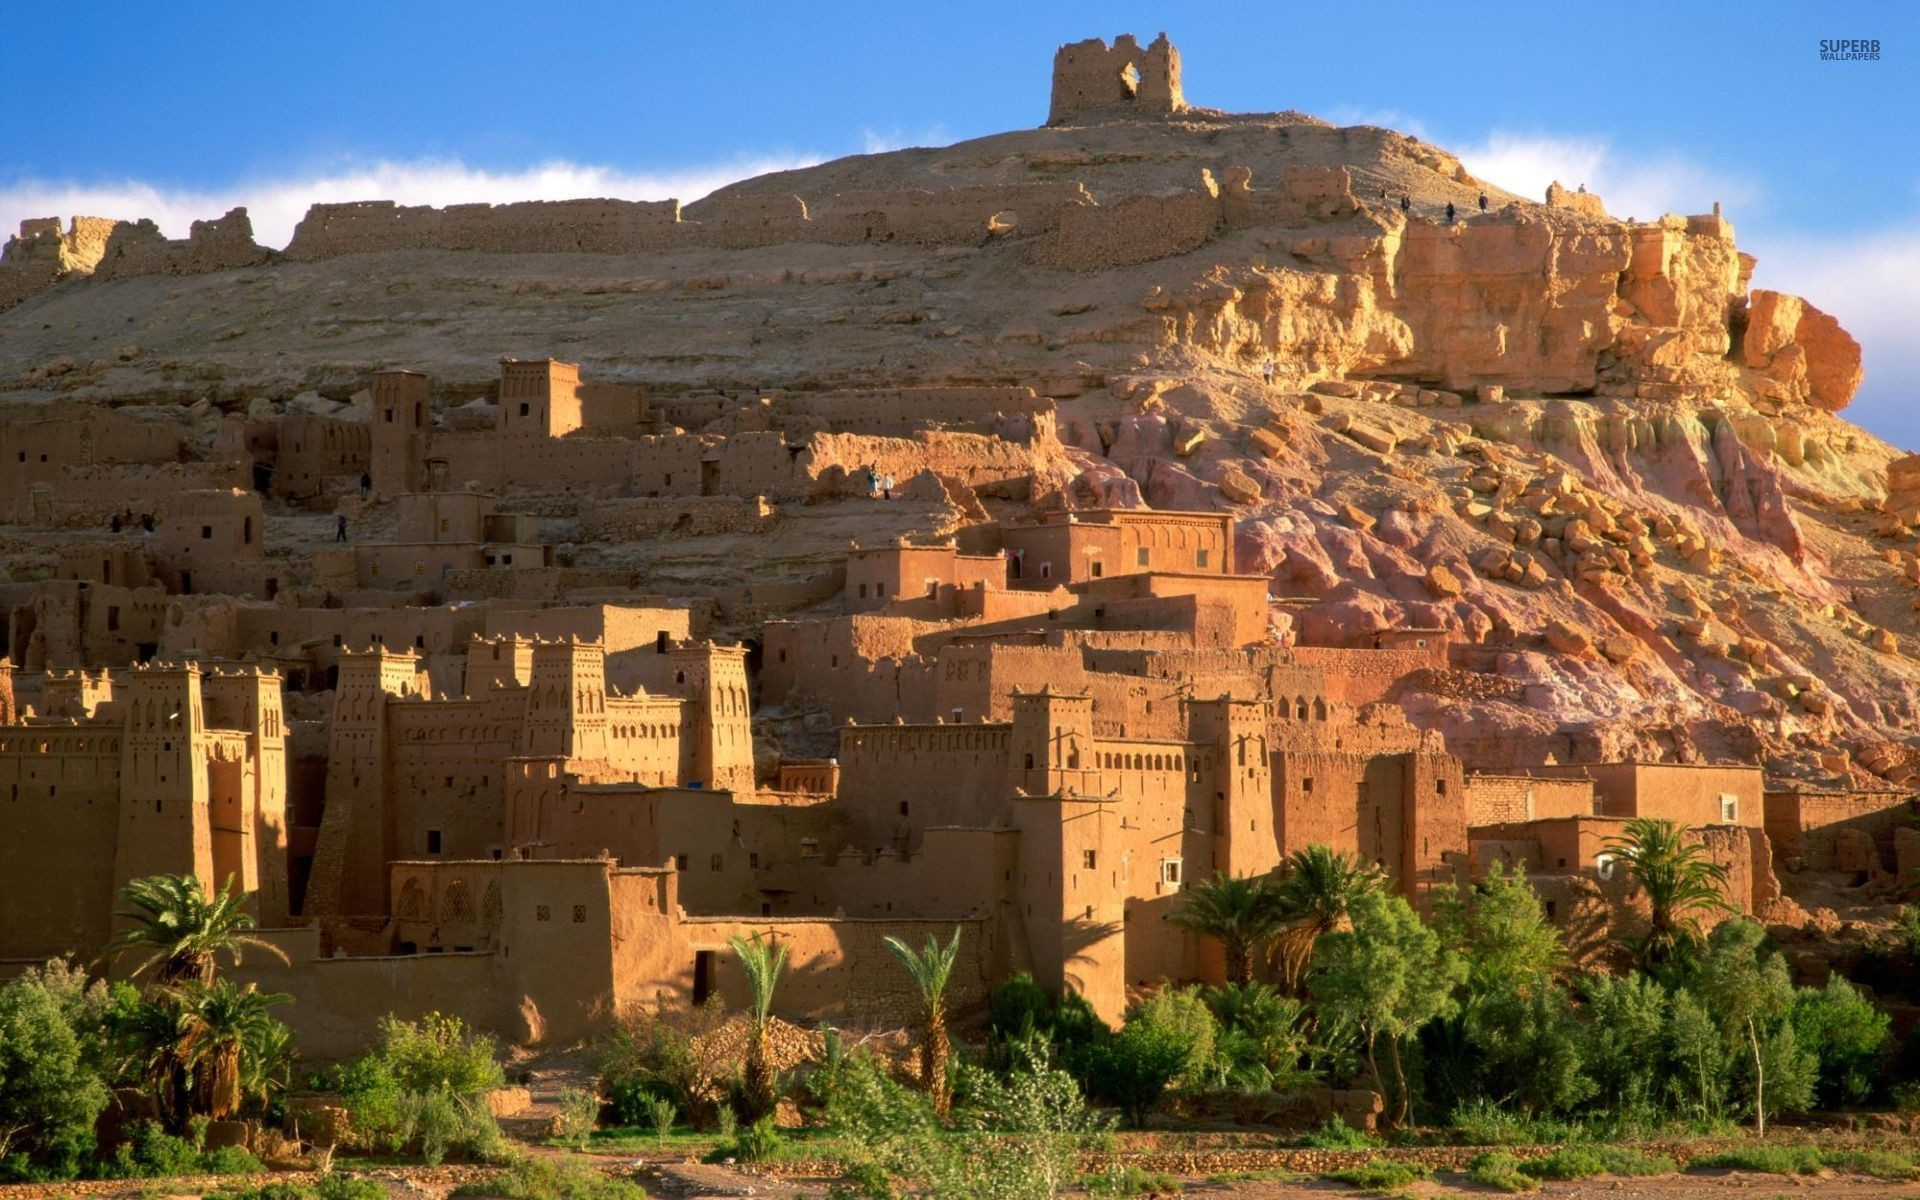 Res: 1920x1200, Image: Kasbah Ruins Morocco wallpapers and stock photos. Â«